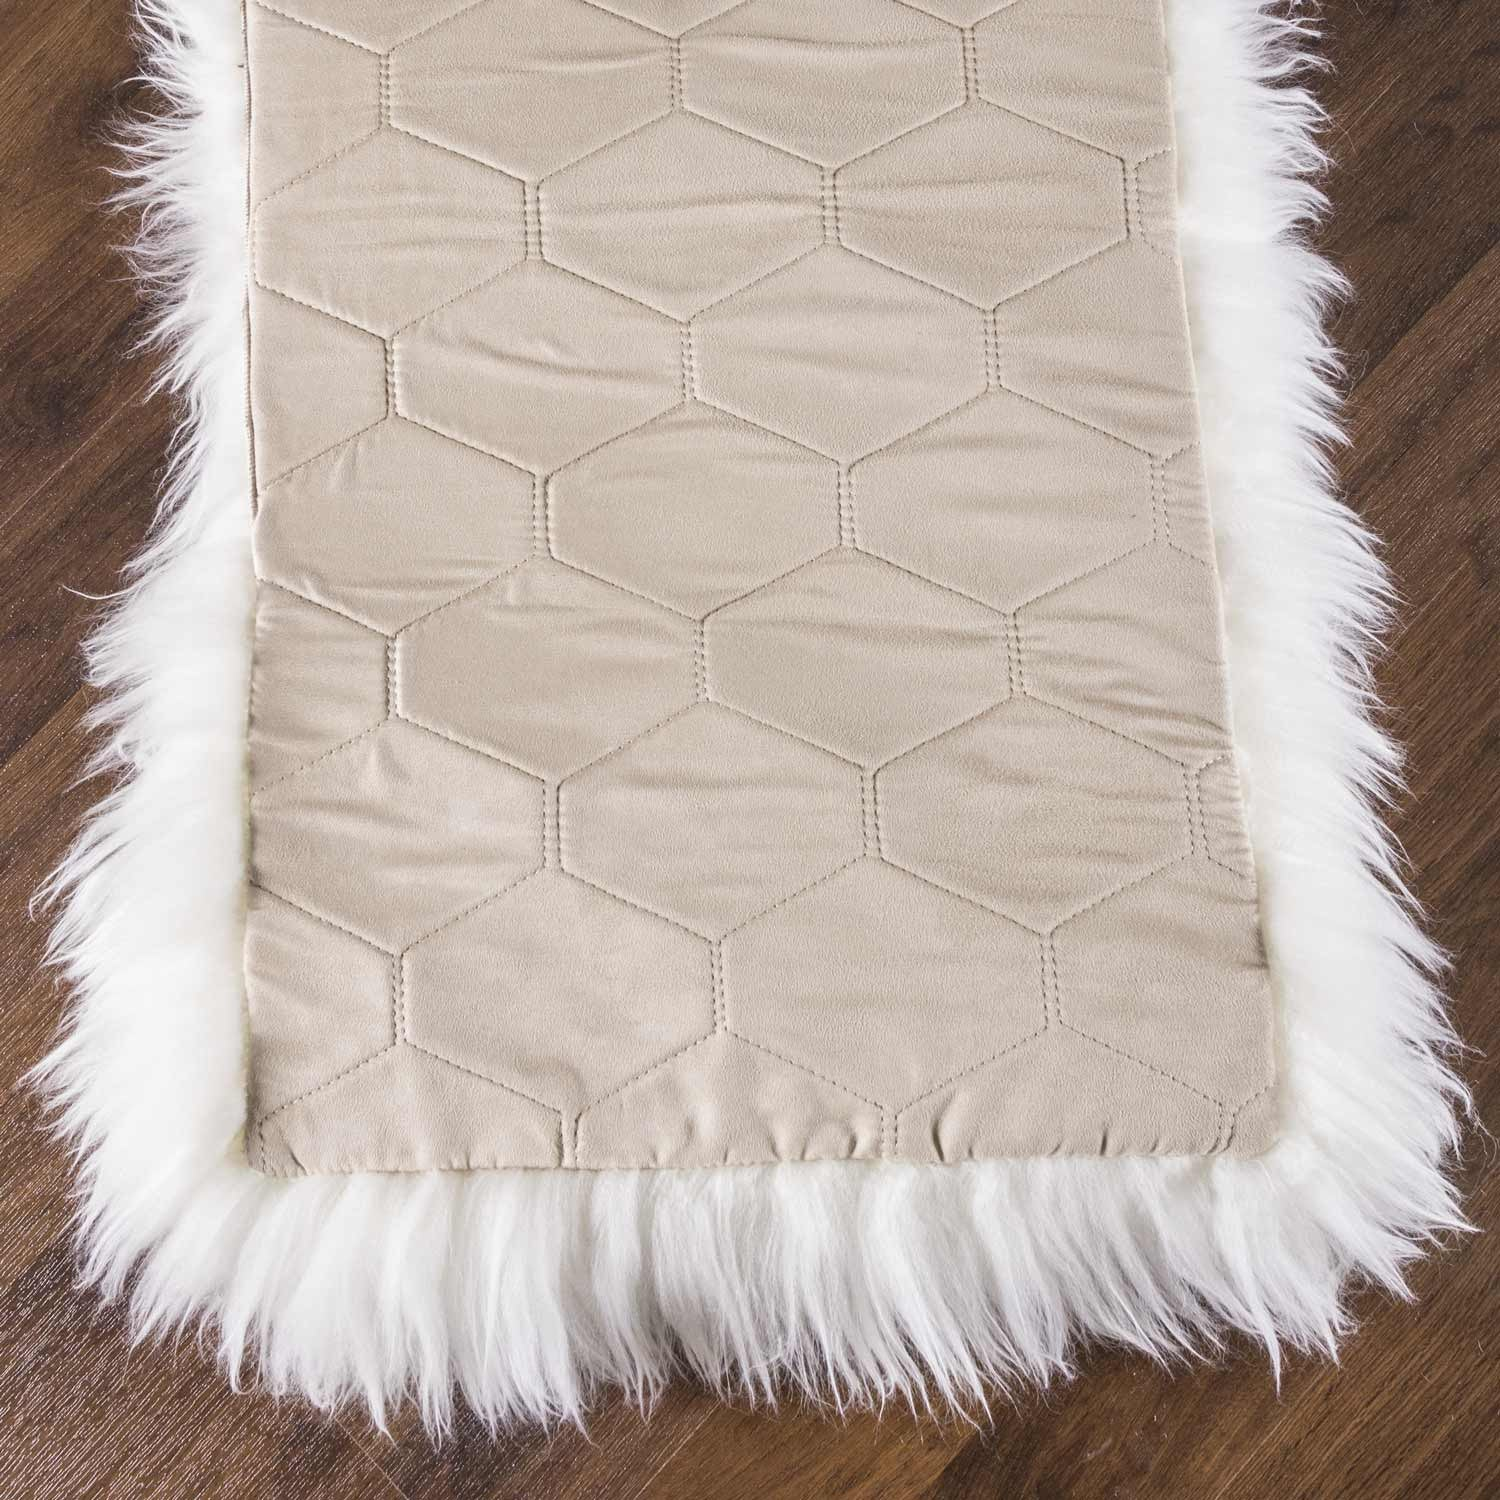 How To Clean Australian Sheepskin Rug Carpet Review